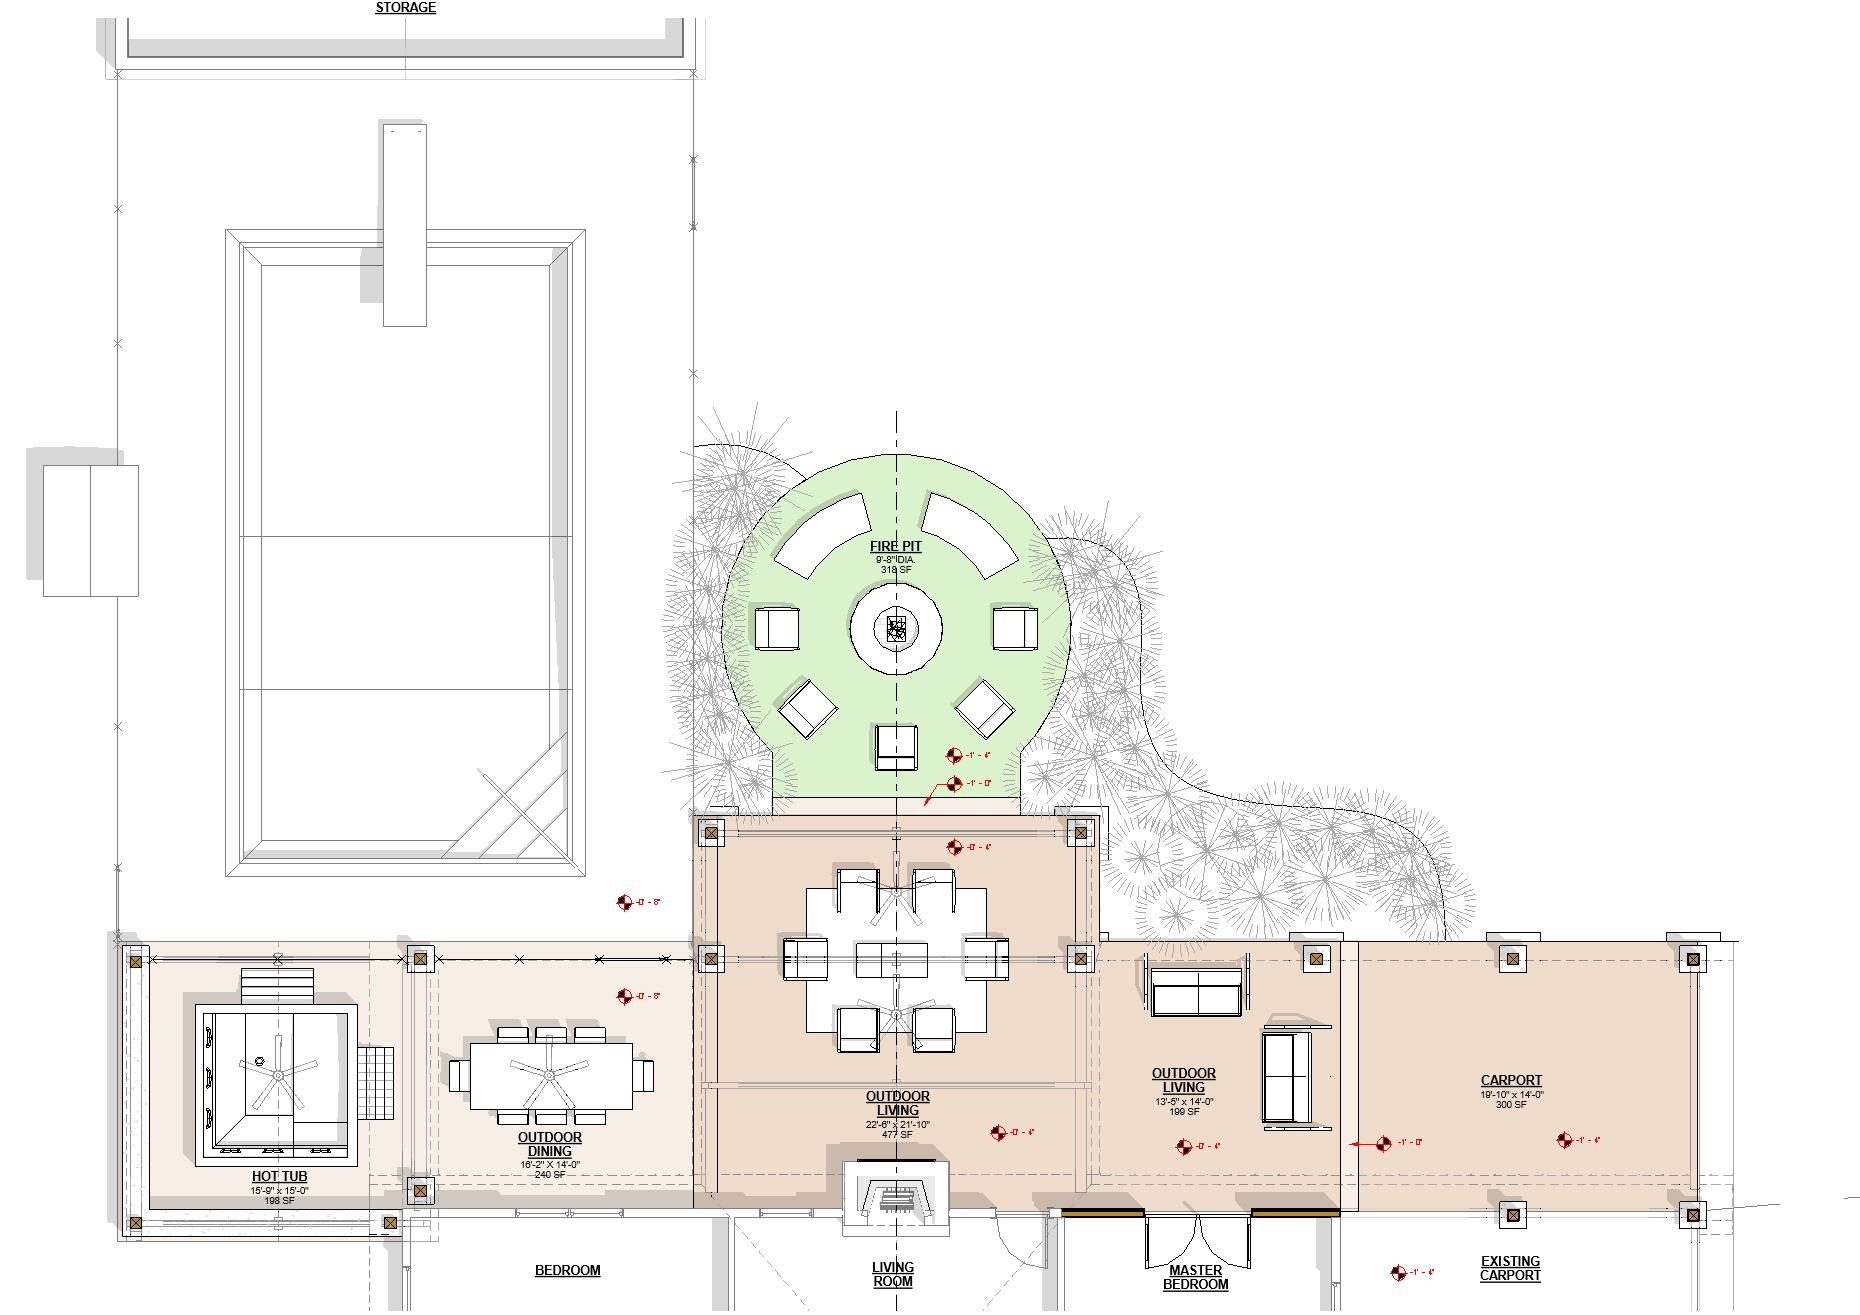 2019 - Floor Plan - Level 1 - Pres - Rea